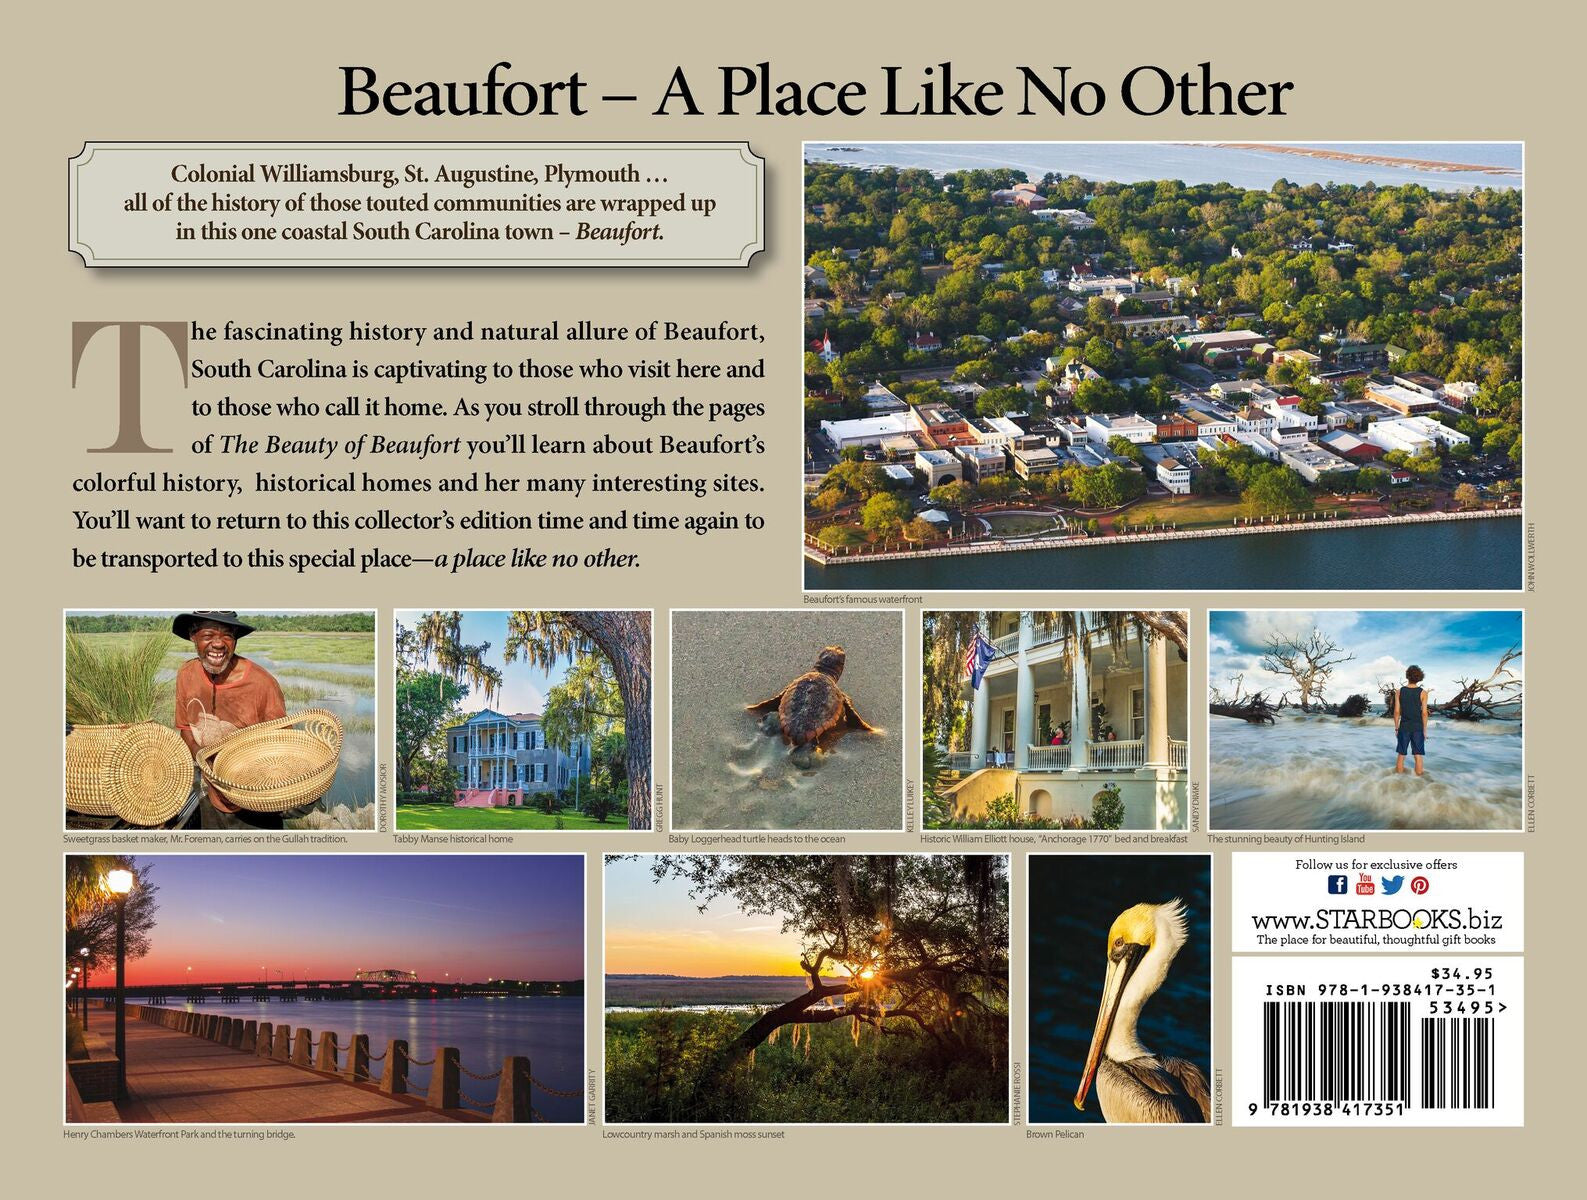 The beauty of Beaufort. Turtles, Pelicans, marina, sweetgrass baskets, historical homes. Photography book Starbooks